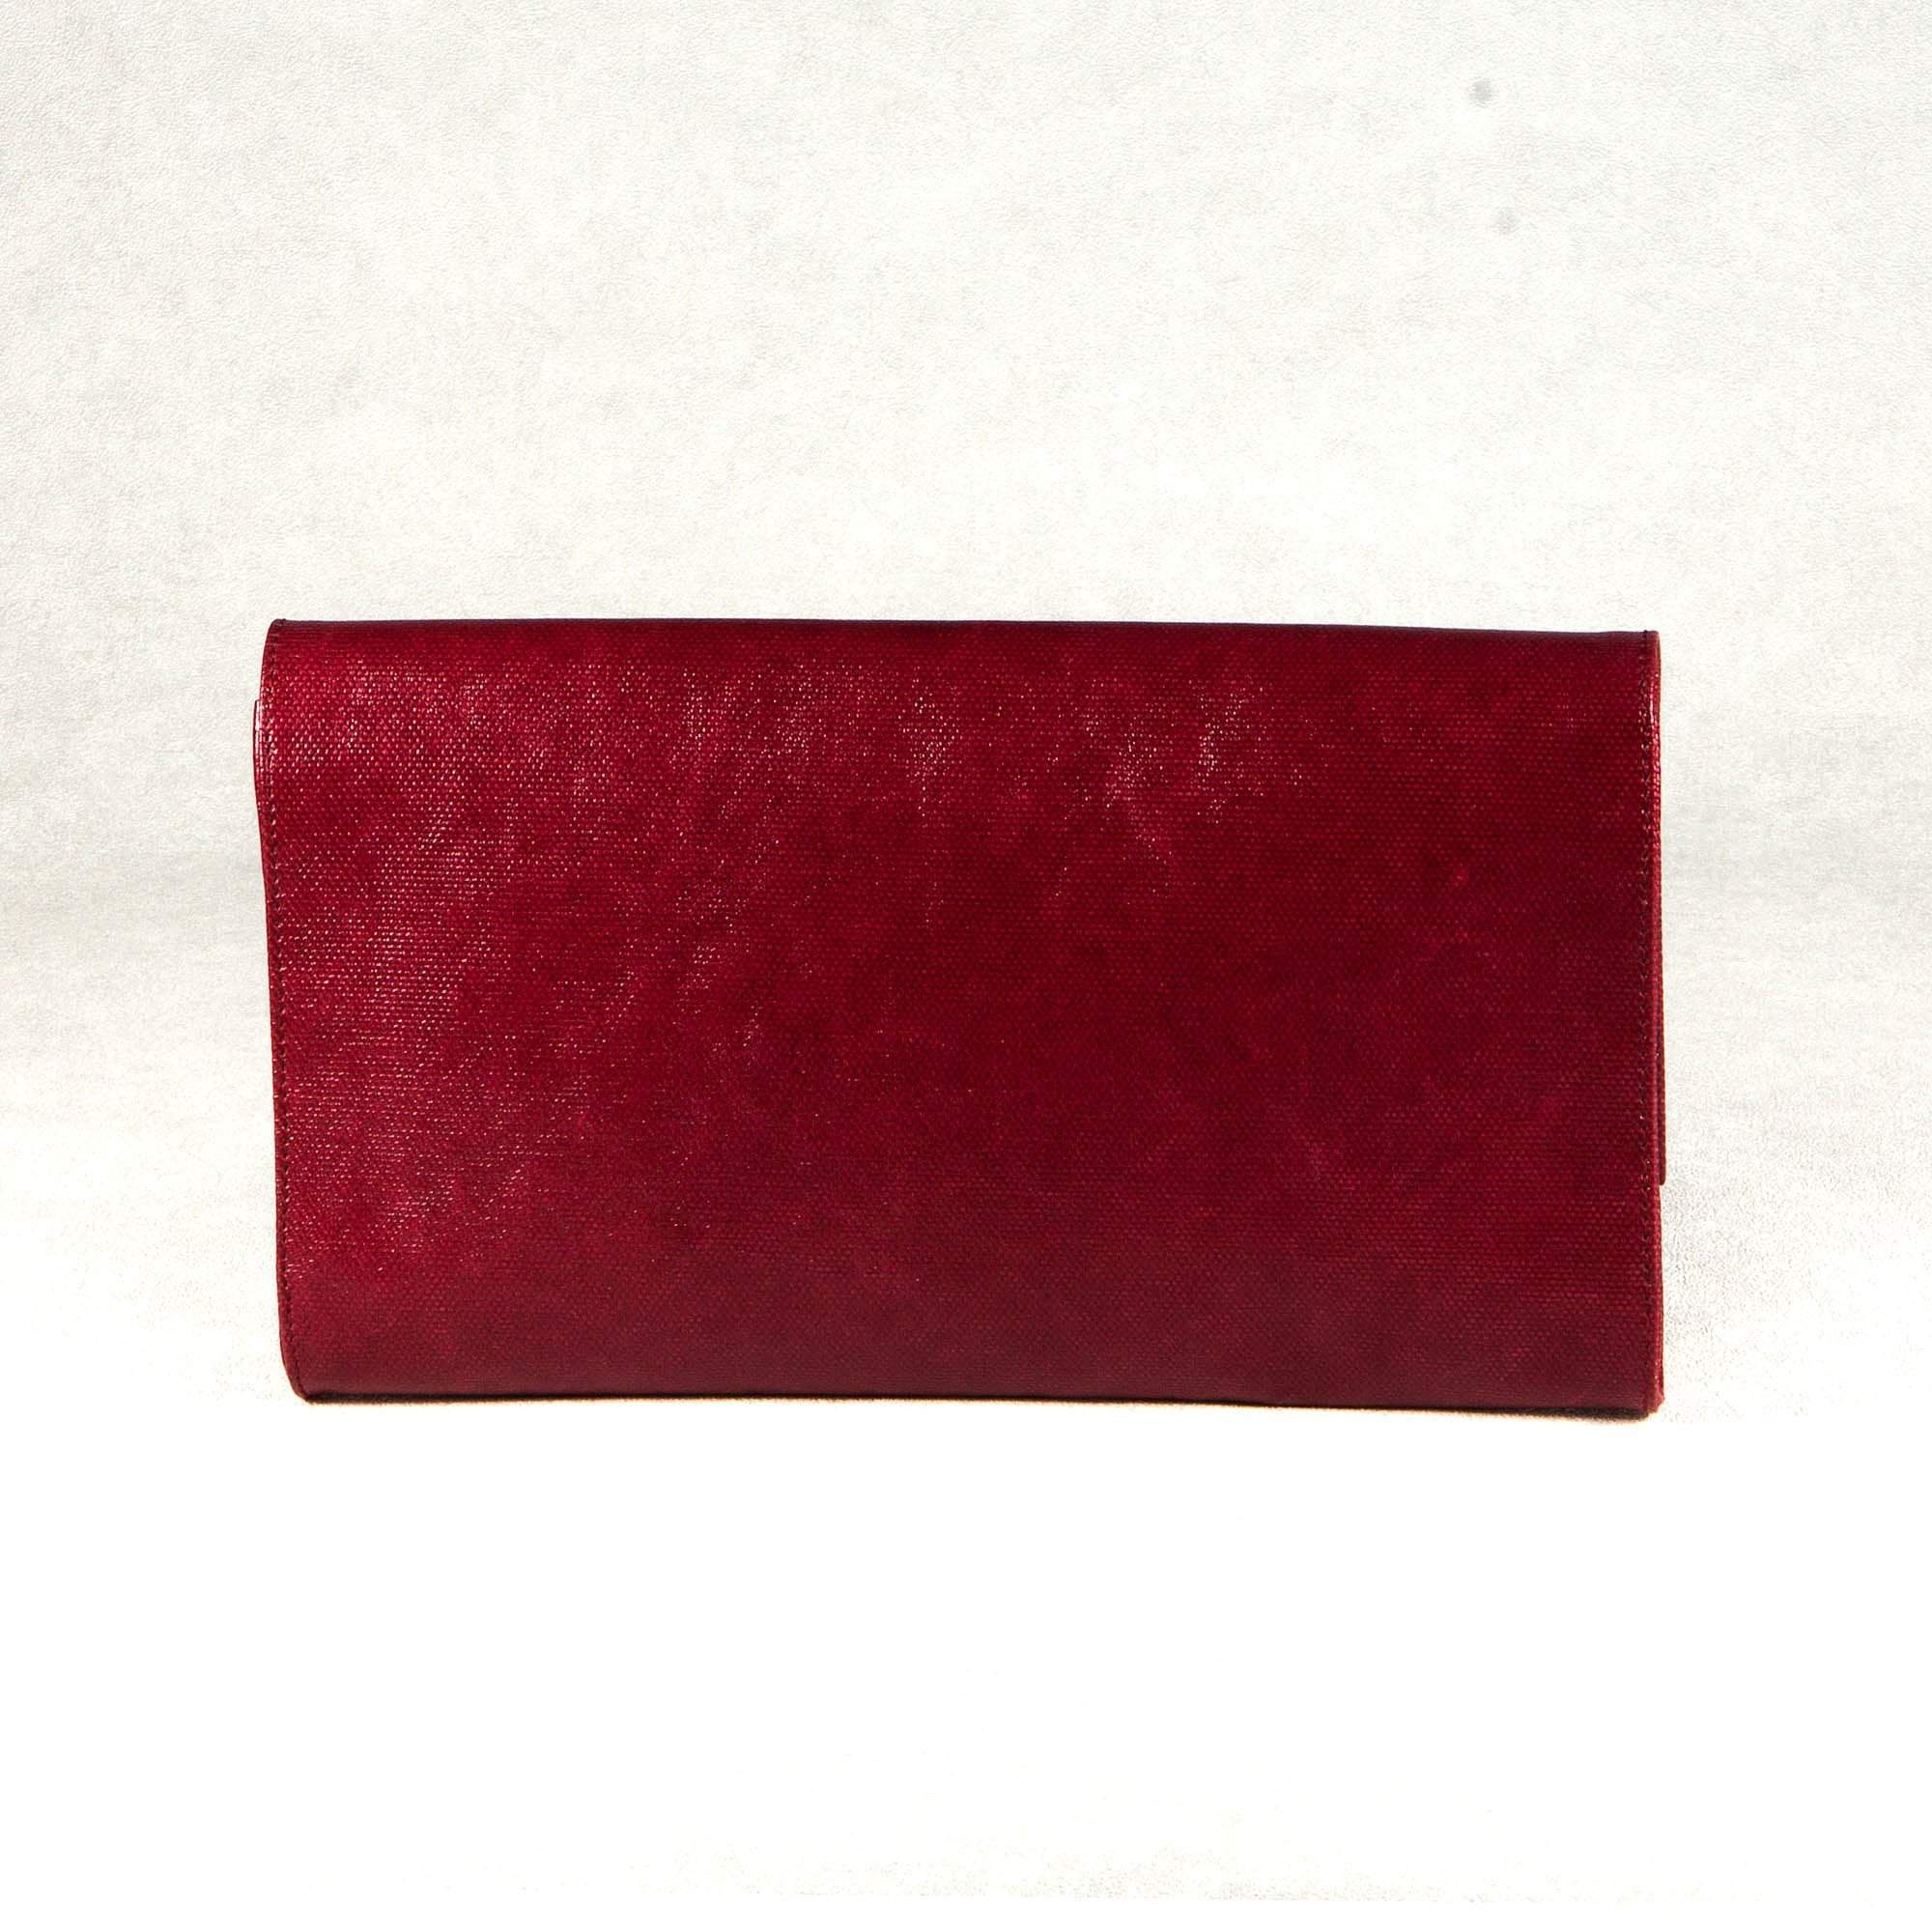 Saint Laurent Sac De Jour Burgundy Clutch